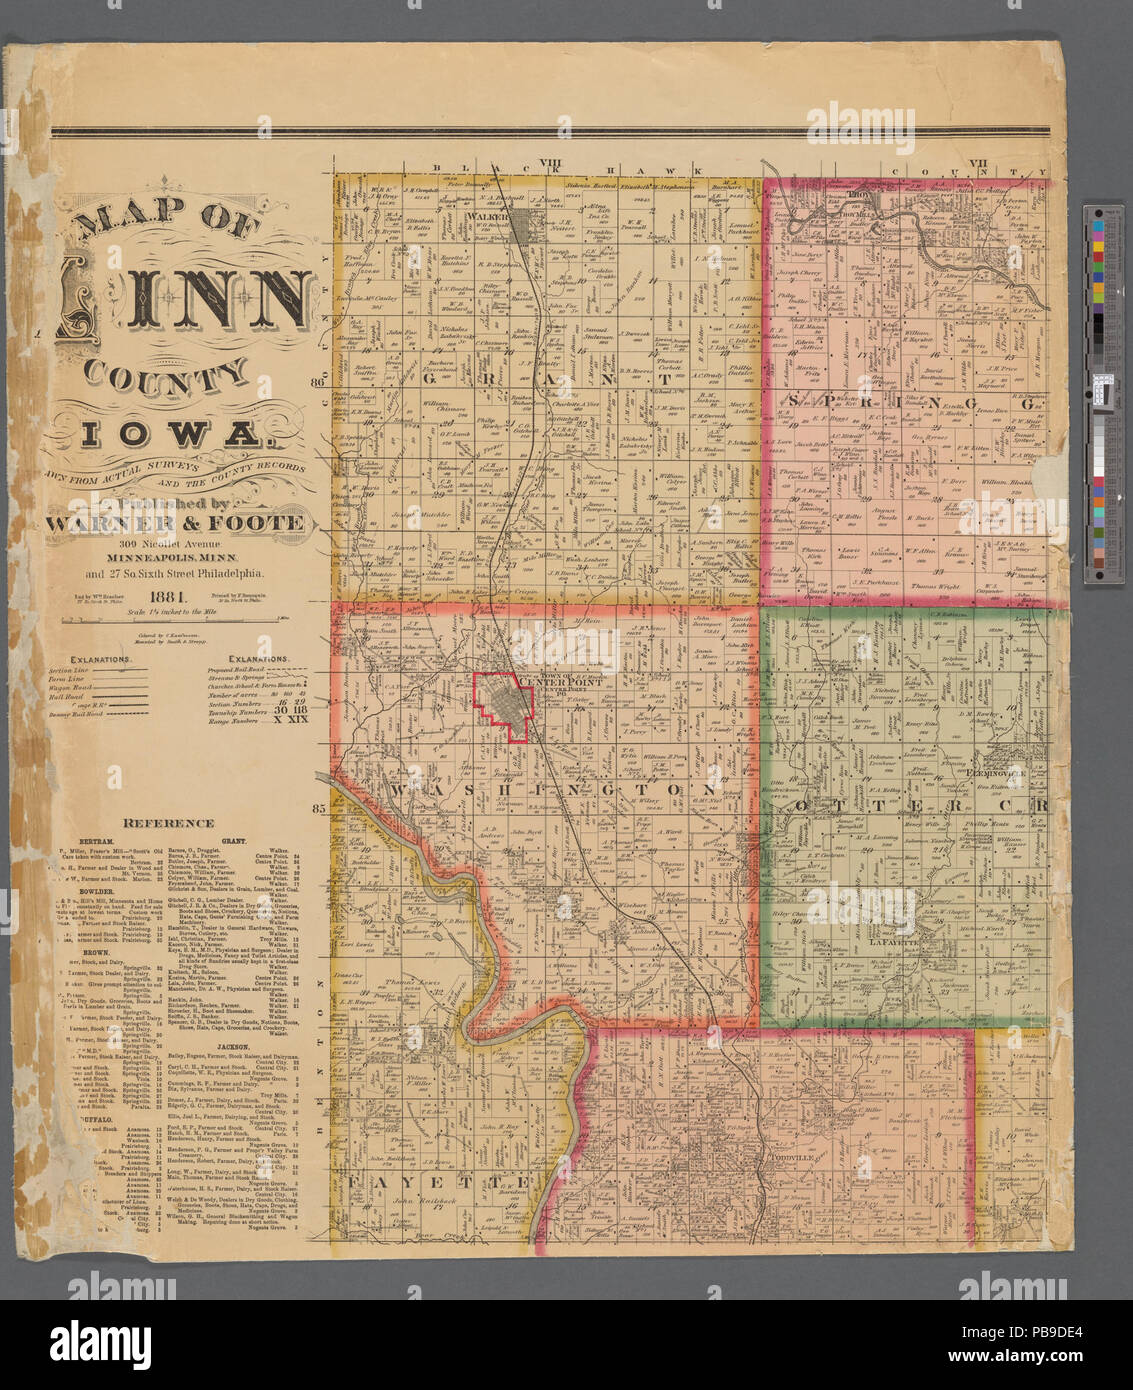 993 Map Of Linn County Iowa Nypl B11655881 5366949 Stock Photo